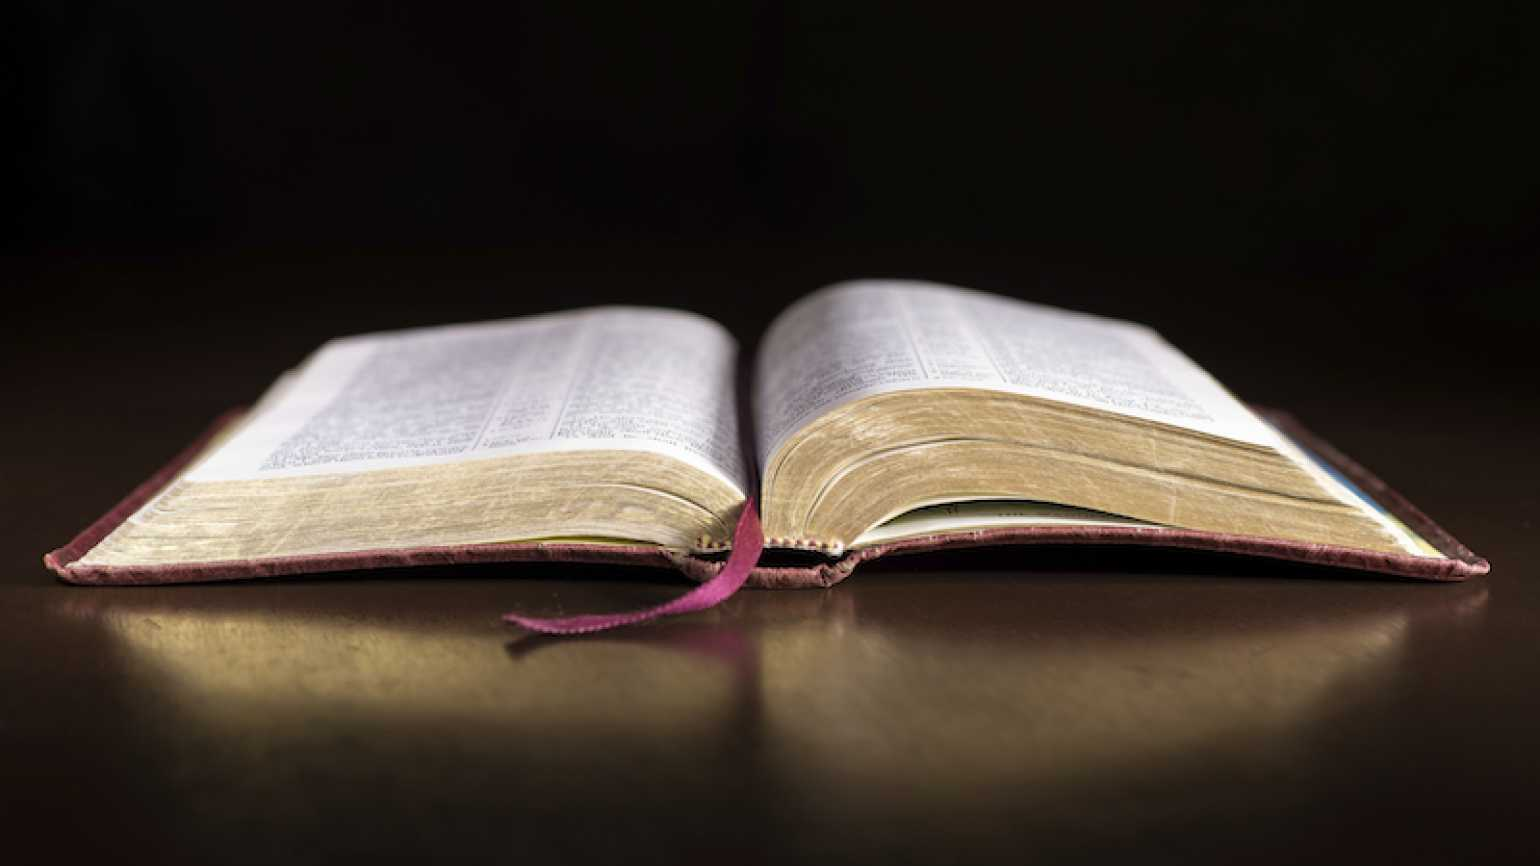 An open Bible. Photo by Todd Sadowski, Thinkstock.